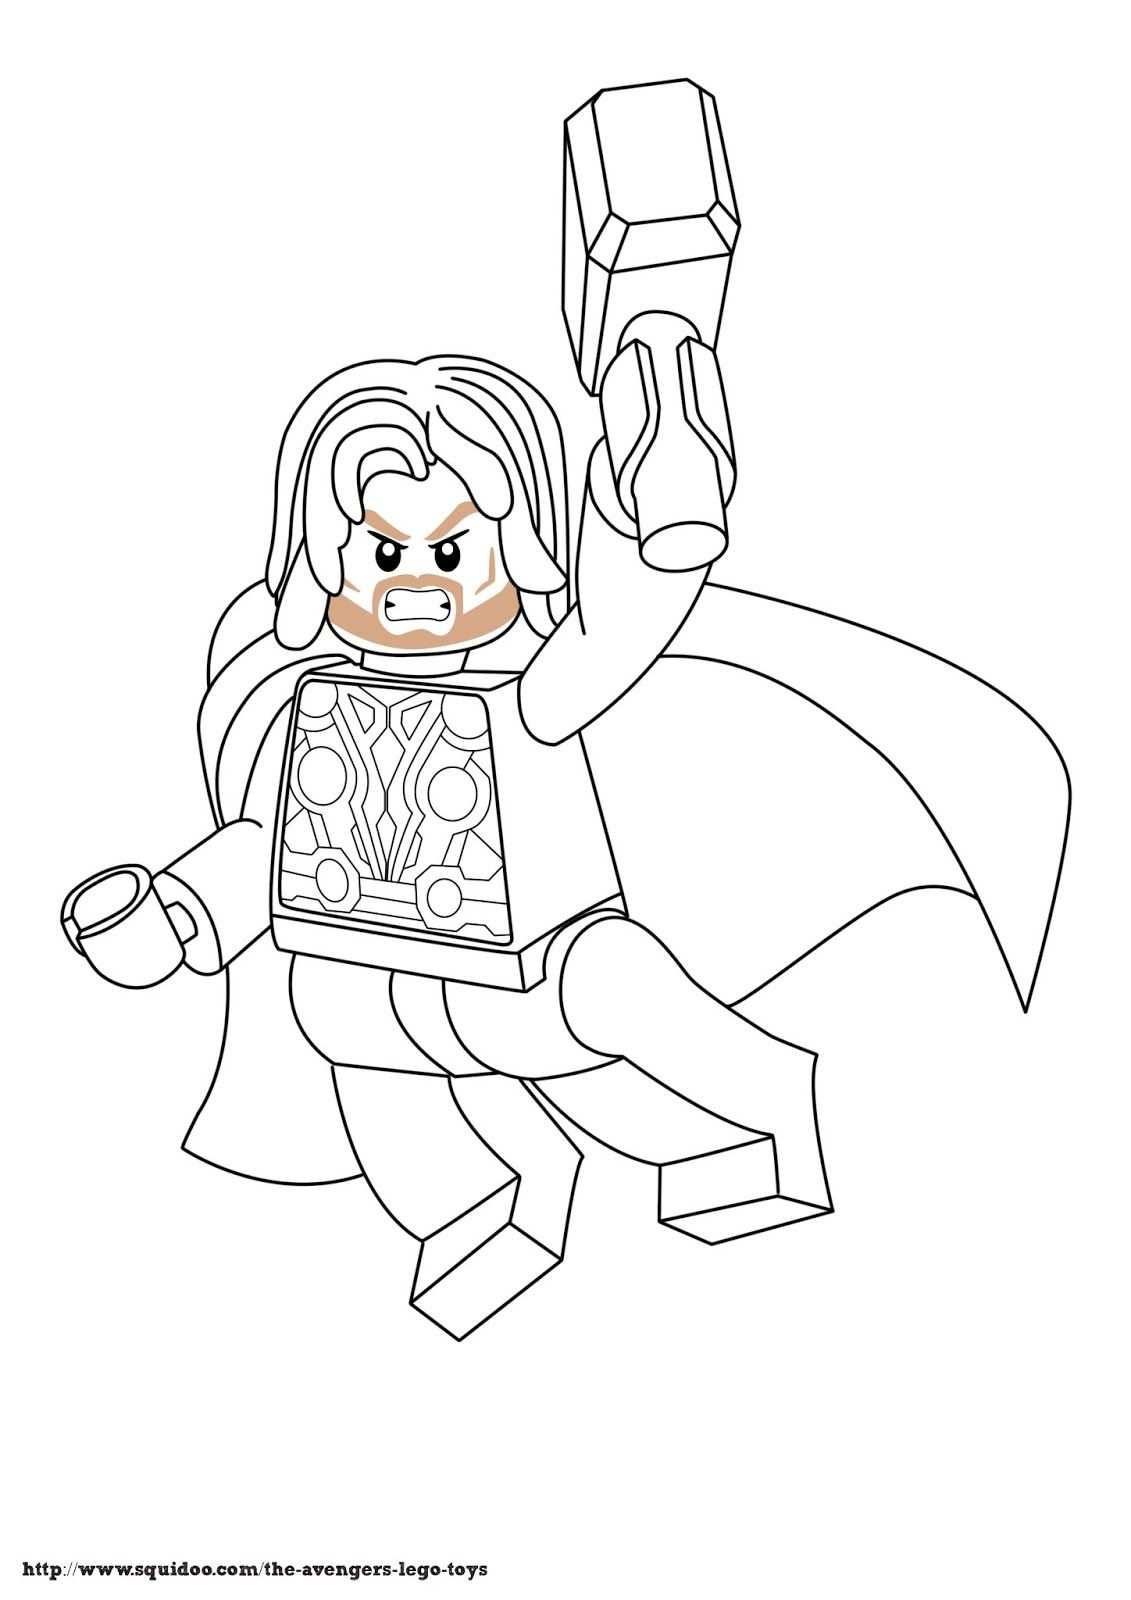 Lego Minifigure Colouring Pages Page 2 Met Afbeeldingen Lego